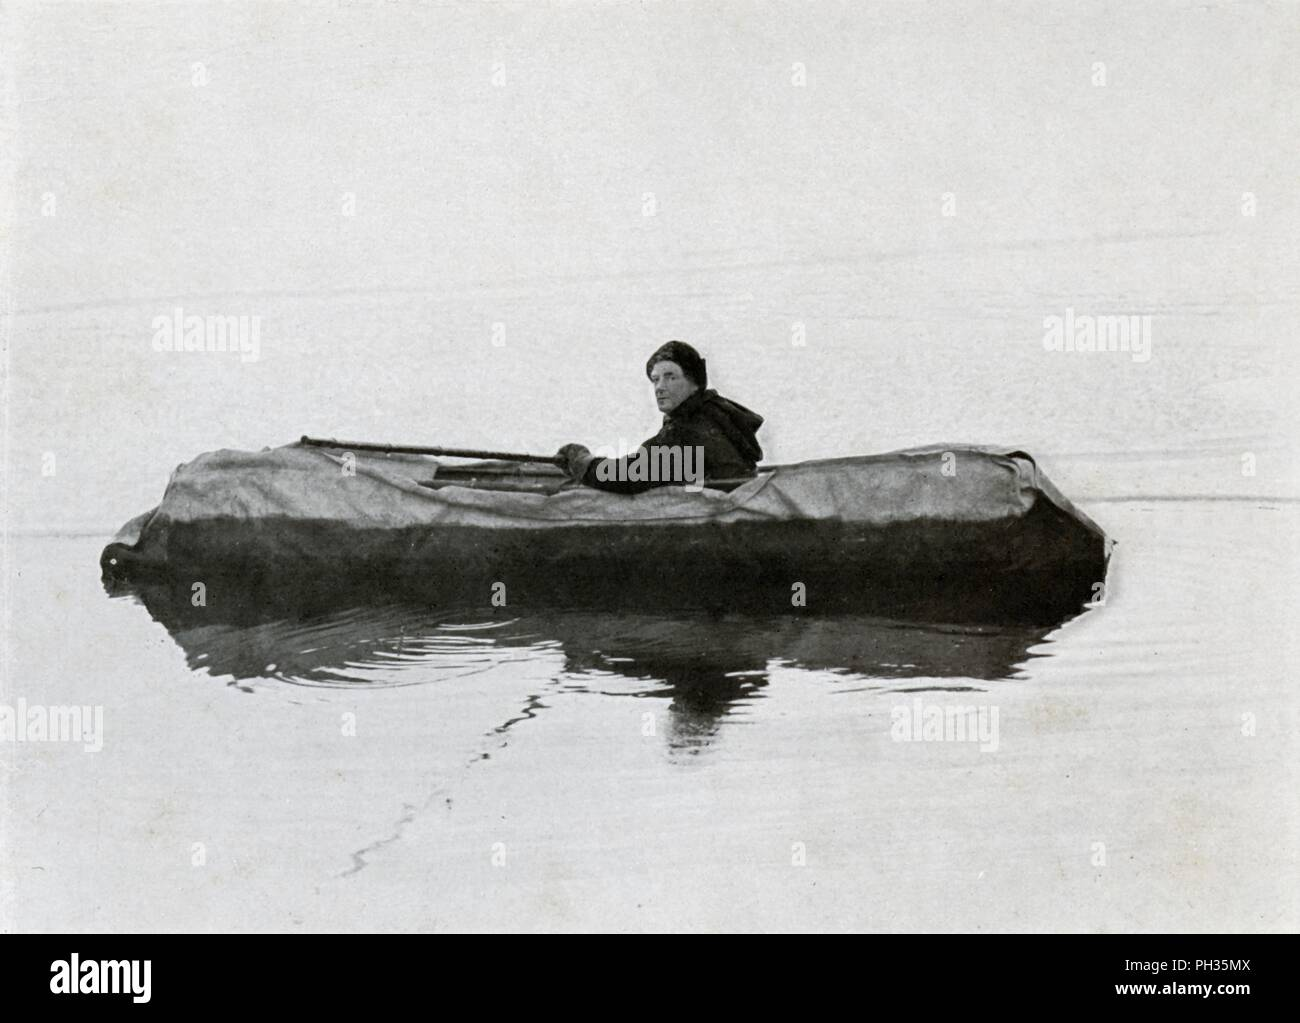 'Campbell Afloat in a Kayak', 1911, (1913). Canvas sledge boat nicknamed the 'Great Western', invented by Lieutenant Victor Campbell. The final expedition of British Antarctic explorer Captain Robert Falcon Scott (1868-1912) left London on 1 June 1910 bound for the South Pole. The Terra Nova Expedition, officially the British Antarctic Expedition (1910-1913), included a geologist, a zoologist, a surgeon, a photographer, an engineer, a ski expert, a meteorologist and a physicist among others. Scott wished to continue the scientific work that he had begun when leading the Discovery Expedition to - Stock Image